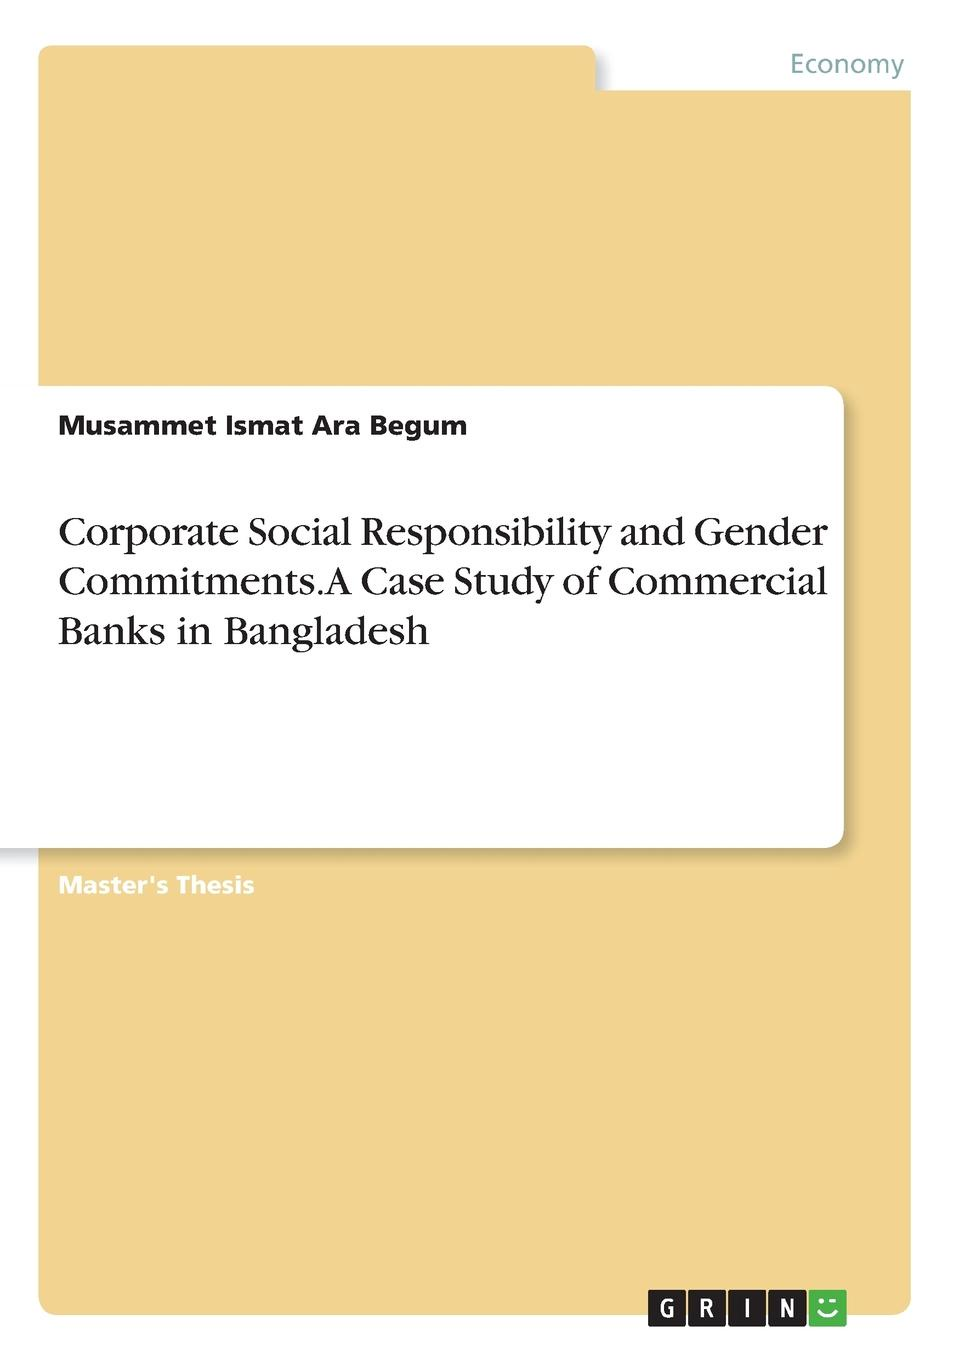 купить Musammet Ismat Ara Begum Corporate Social Responsibility and Gender Commitments. A Case Study of Commercial Banks in Bangladesh по цене 2989 рублей